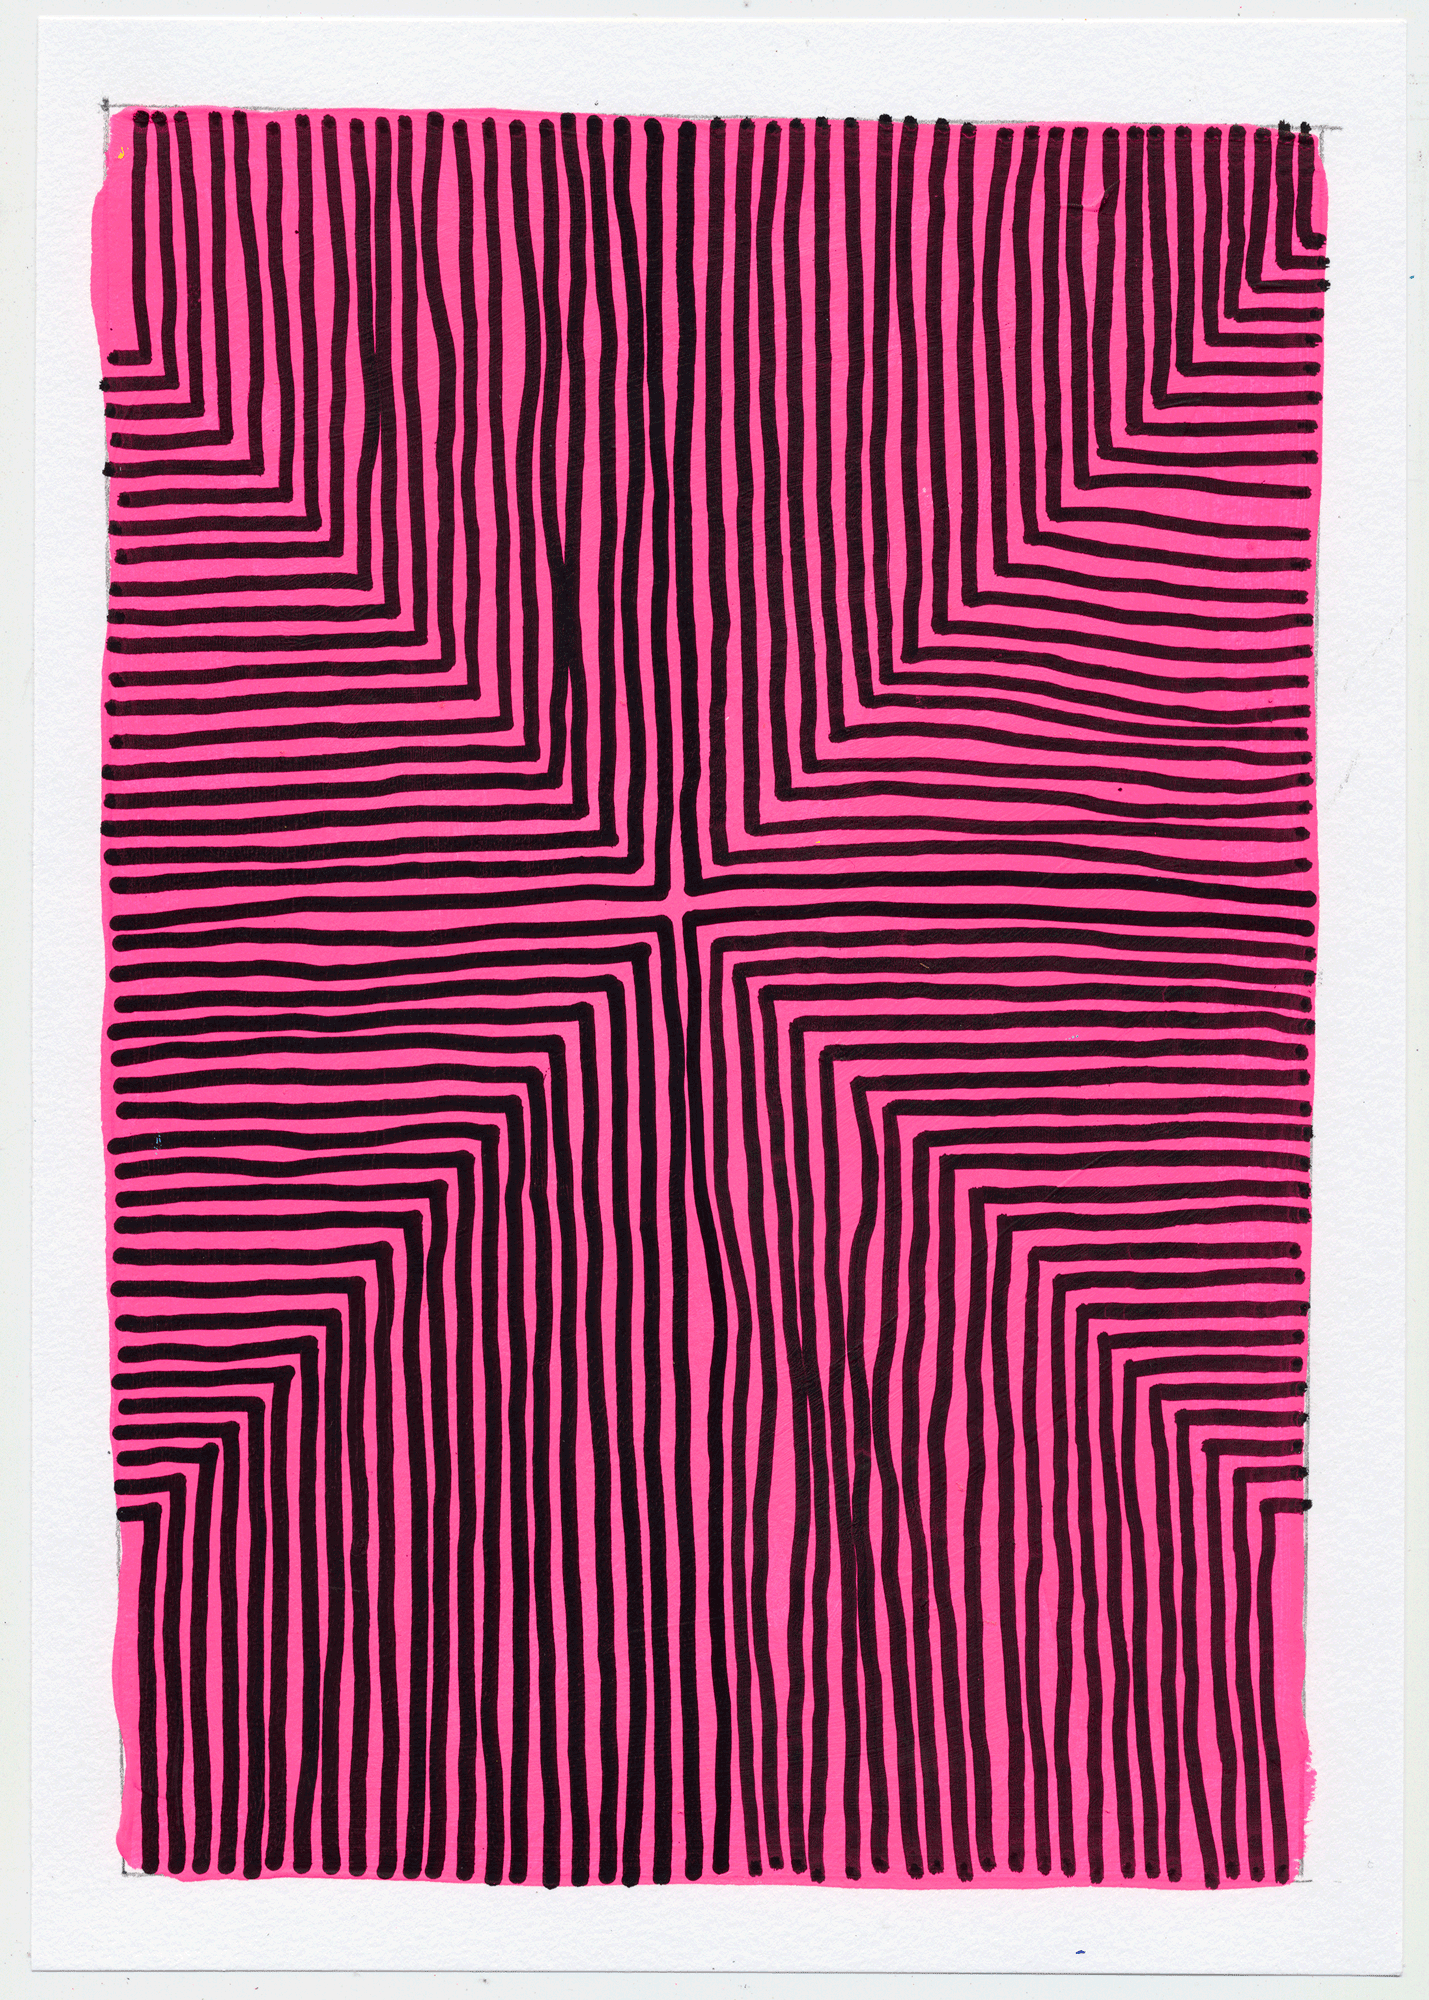 "NY1752 10"" X 7"", acrylic on paper, 2017  available at Etsy   i never get sick of repeating simple shapes over bright colors and watching what my unstable hand will create. usually a swerving optic trip."